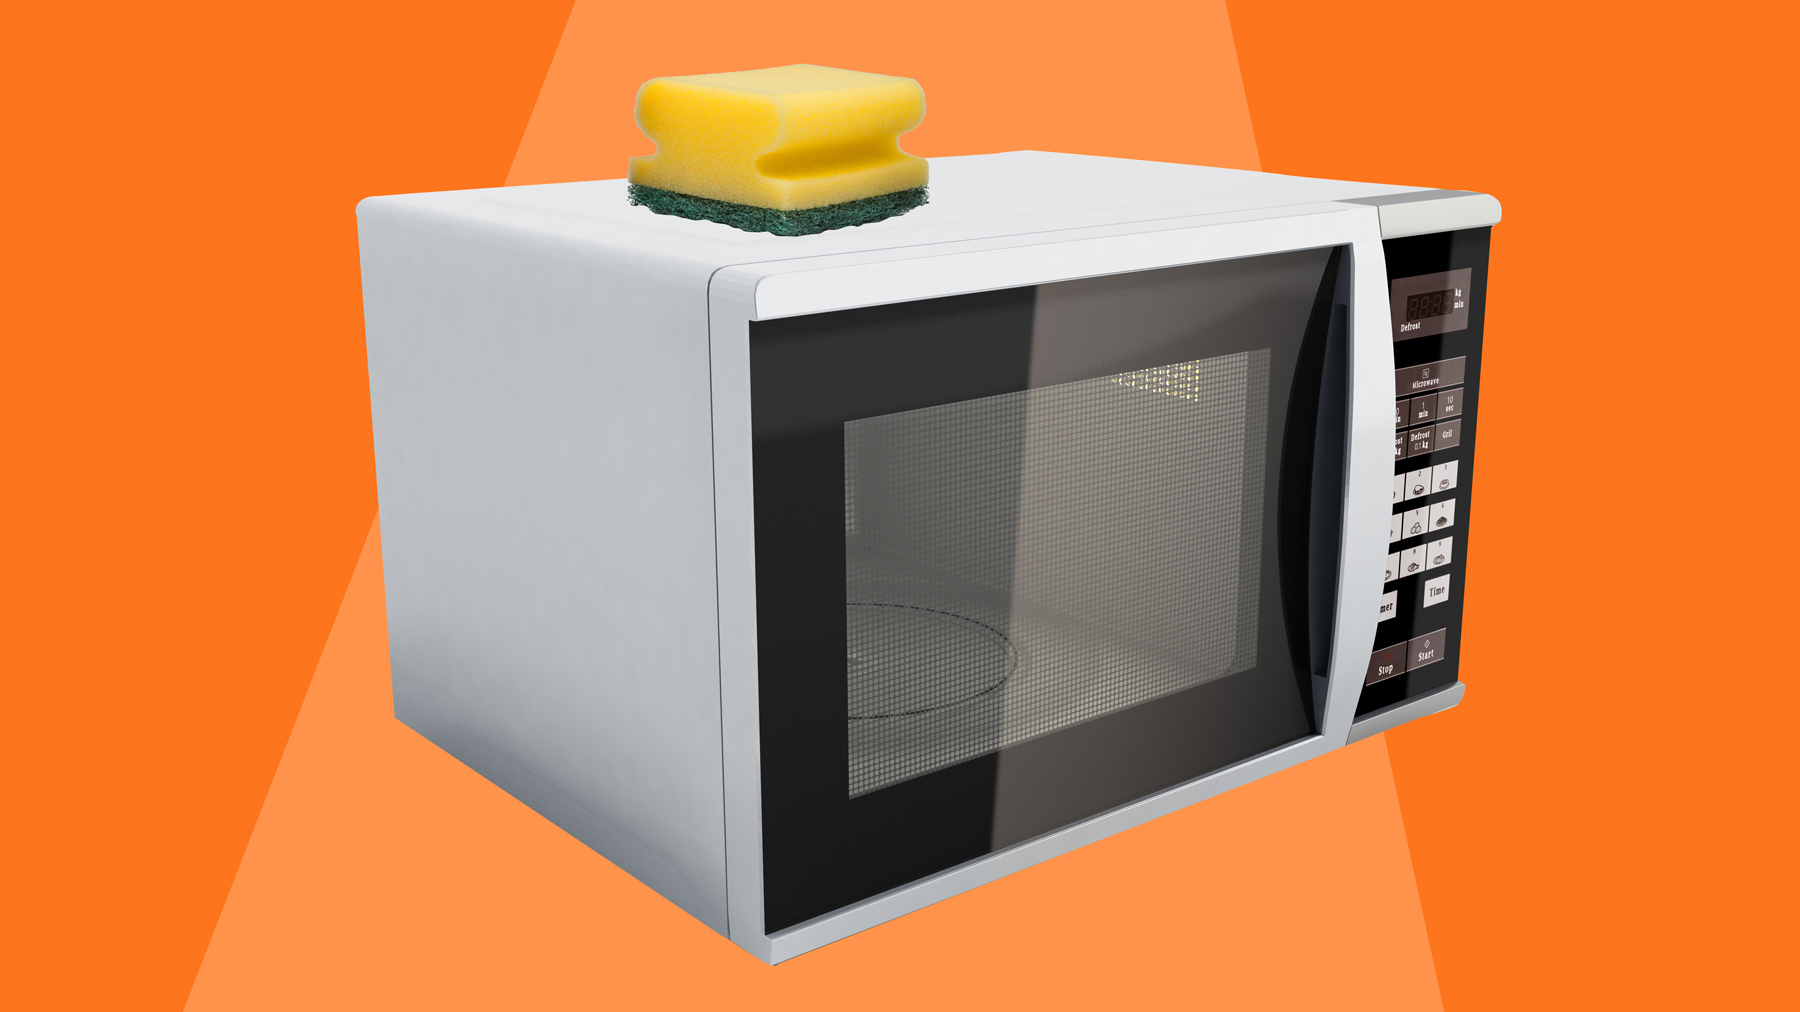 Microwave cleaning hacks and tricks - vinegar, lemon, and more